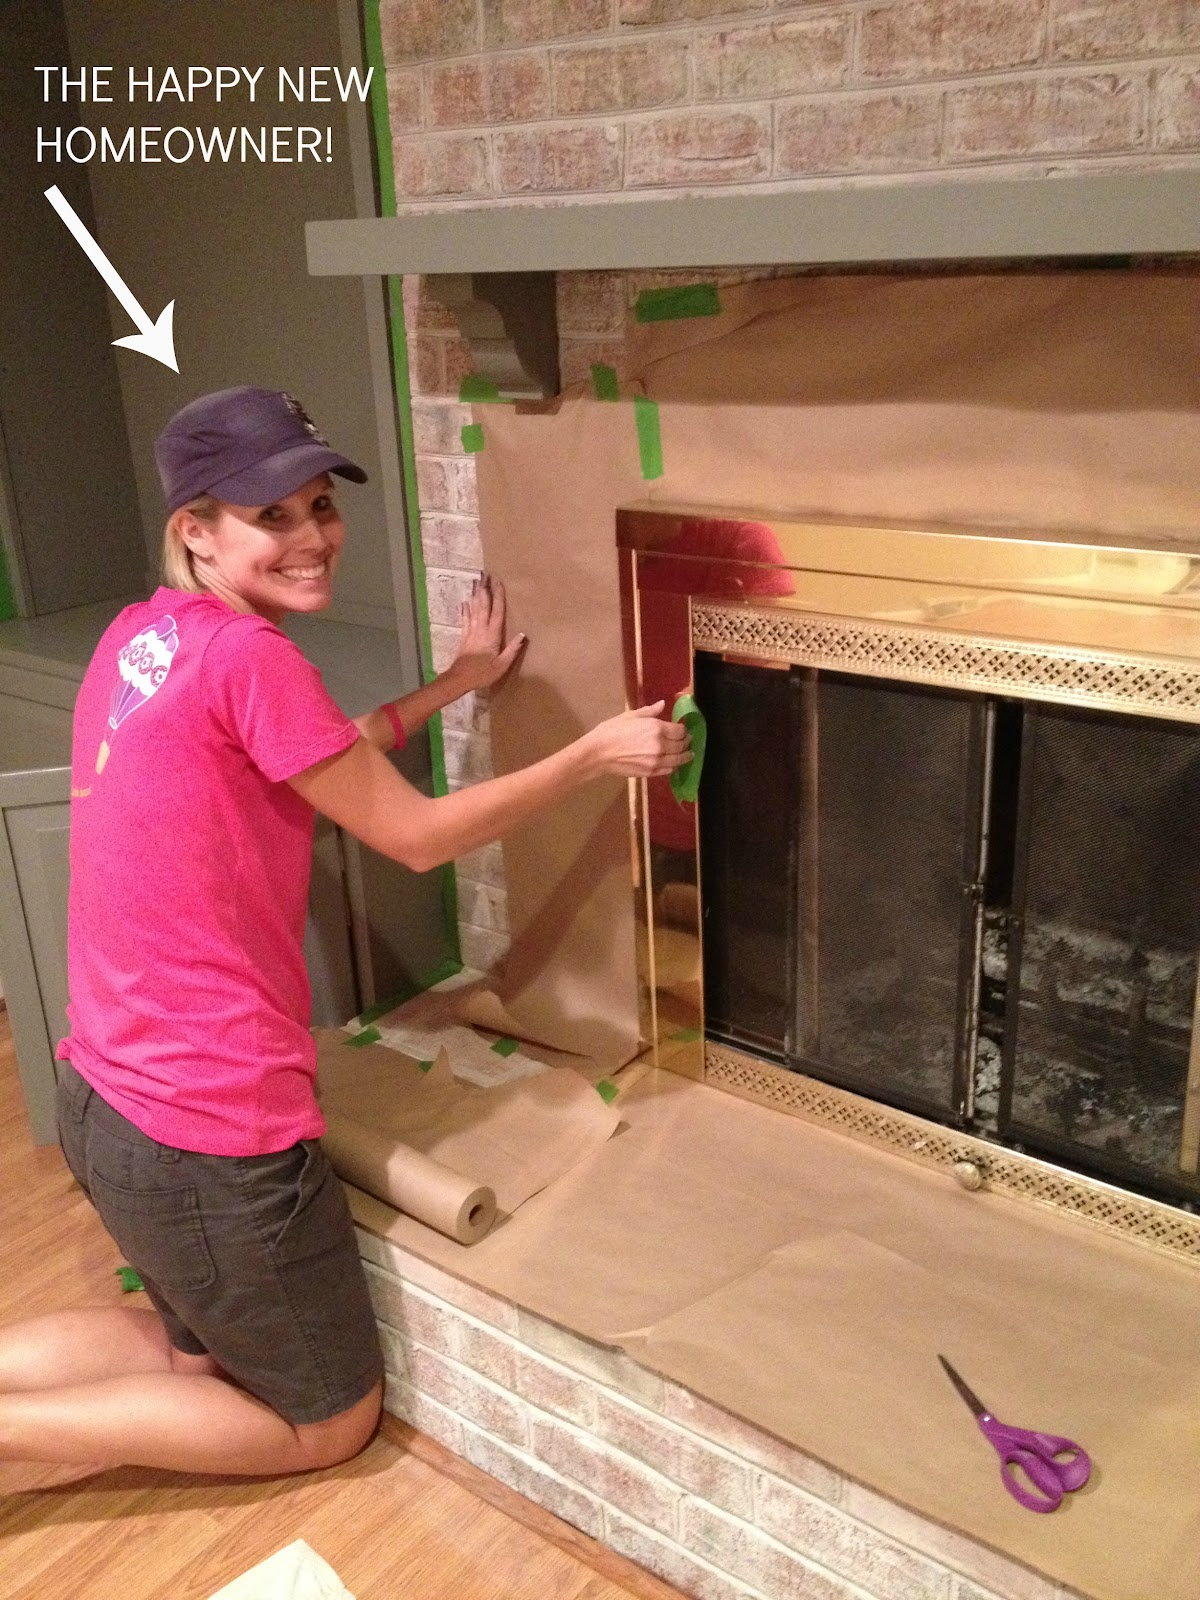 Brass fireplace update east coast creative blog once the edges are take care of youll want to use the craft paper and tape to make sure all of the brick is covered its sorta like wrapping a really big eventshaper